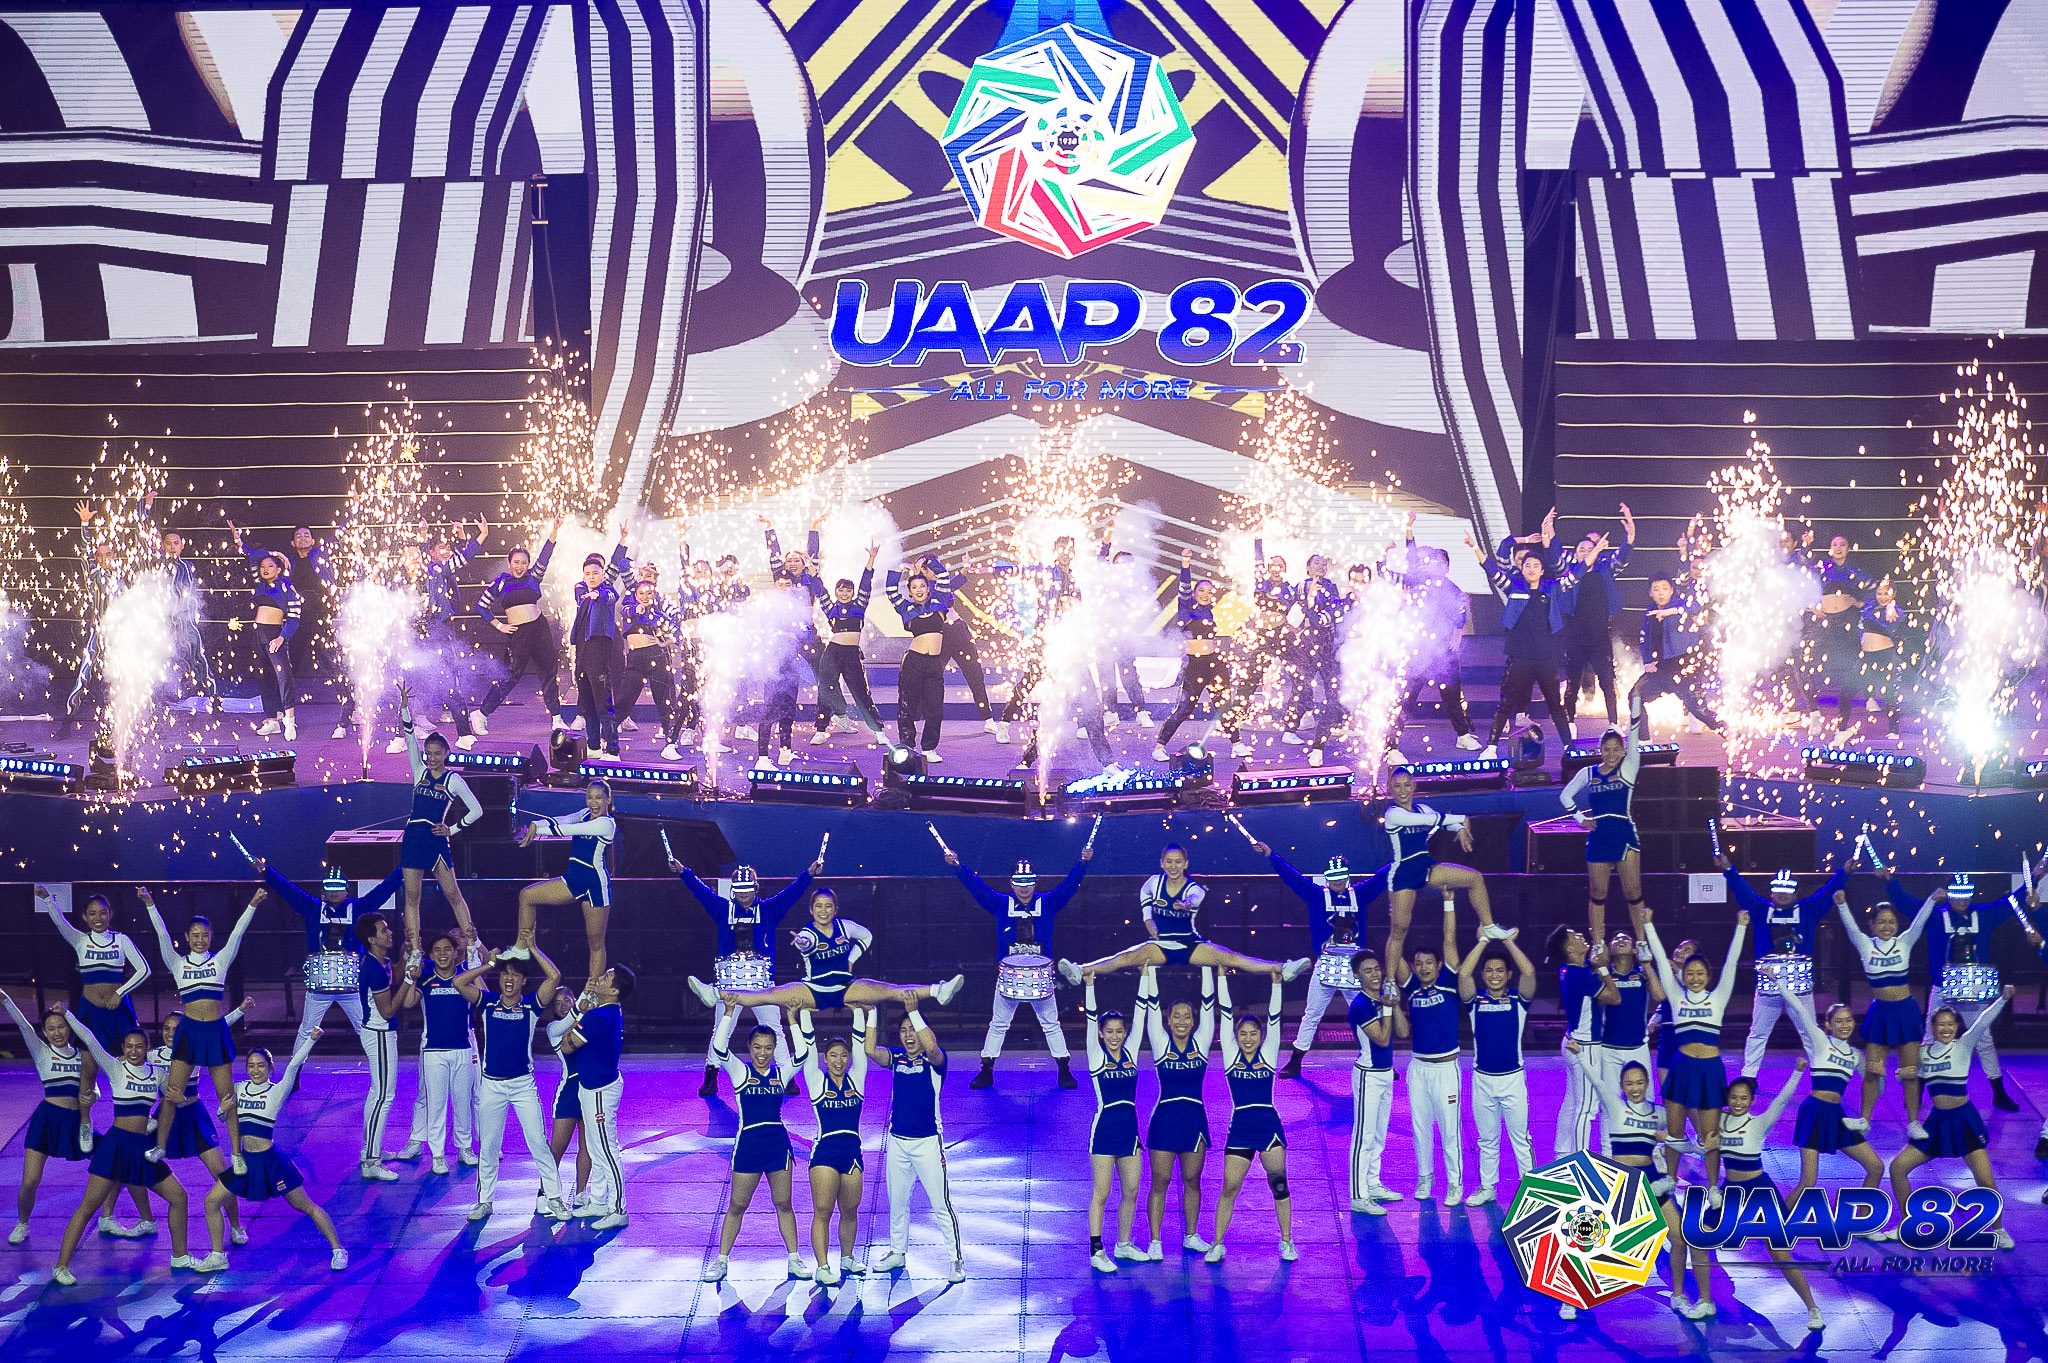 UAAP Season 82 opens with 'All For More' theme